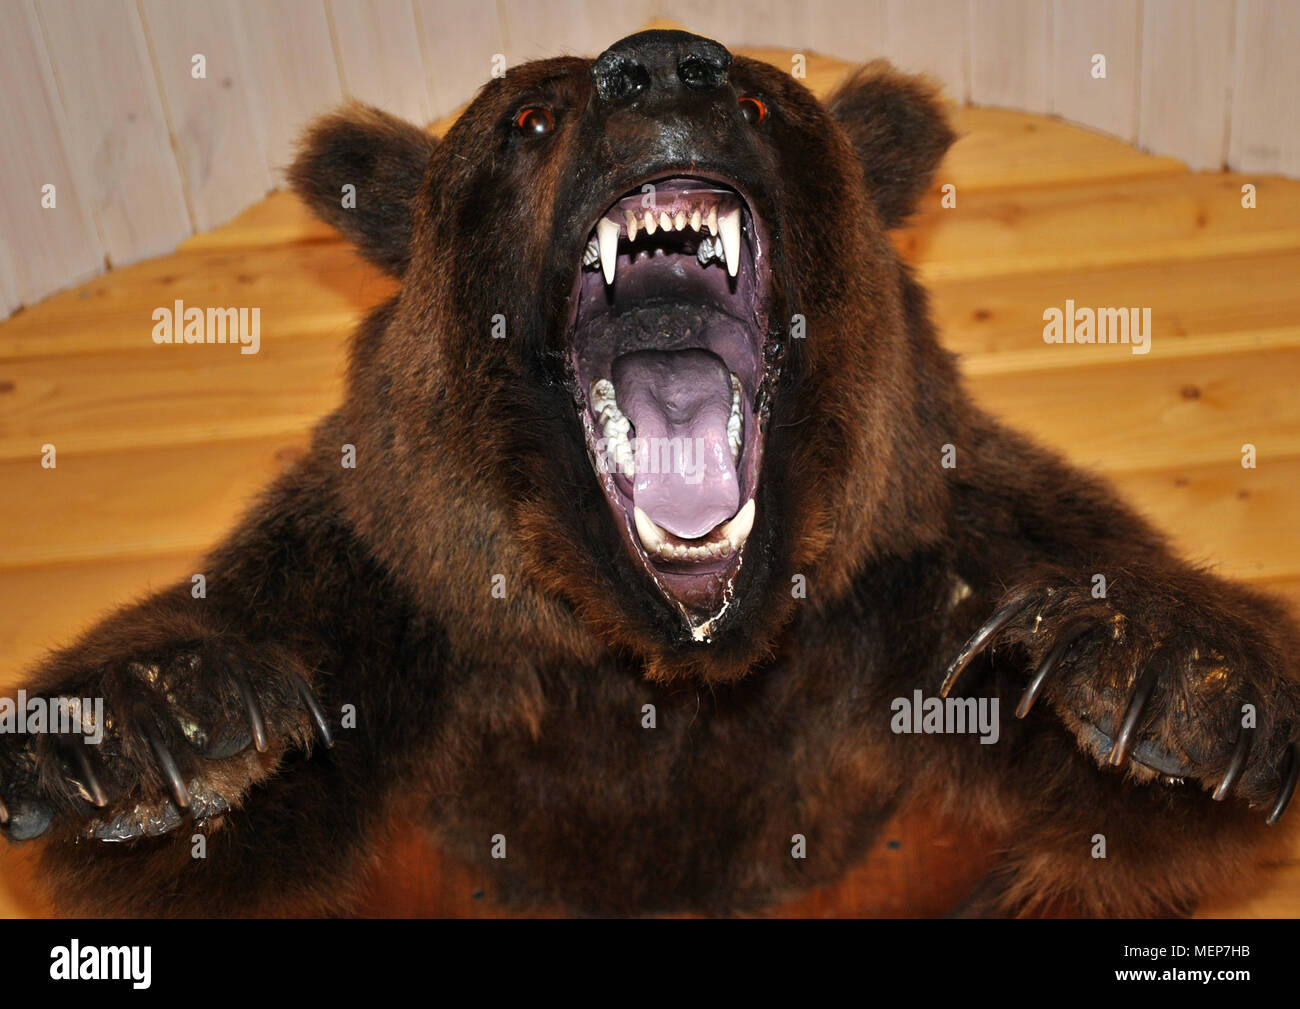 On the wall hangs a stuffed bear head with an open mouth. - Stock Image